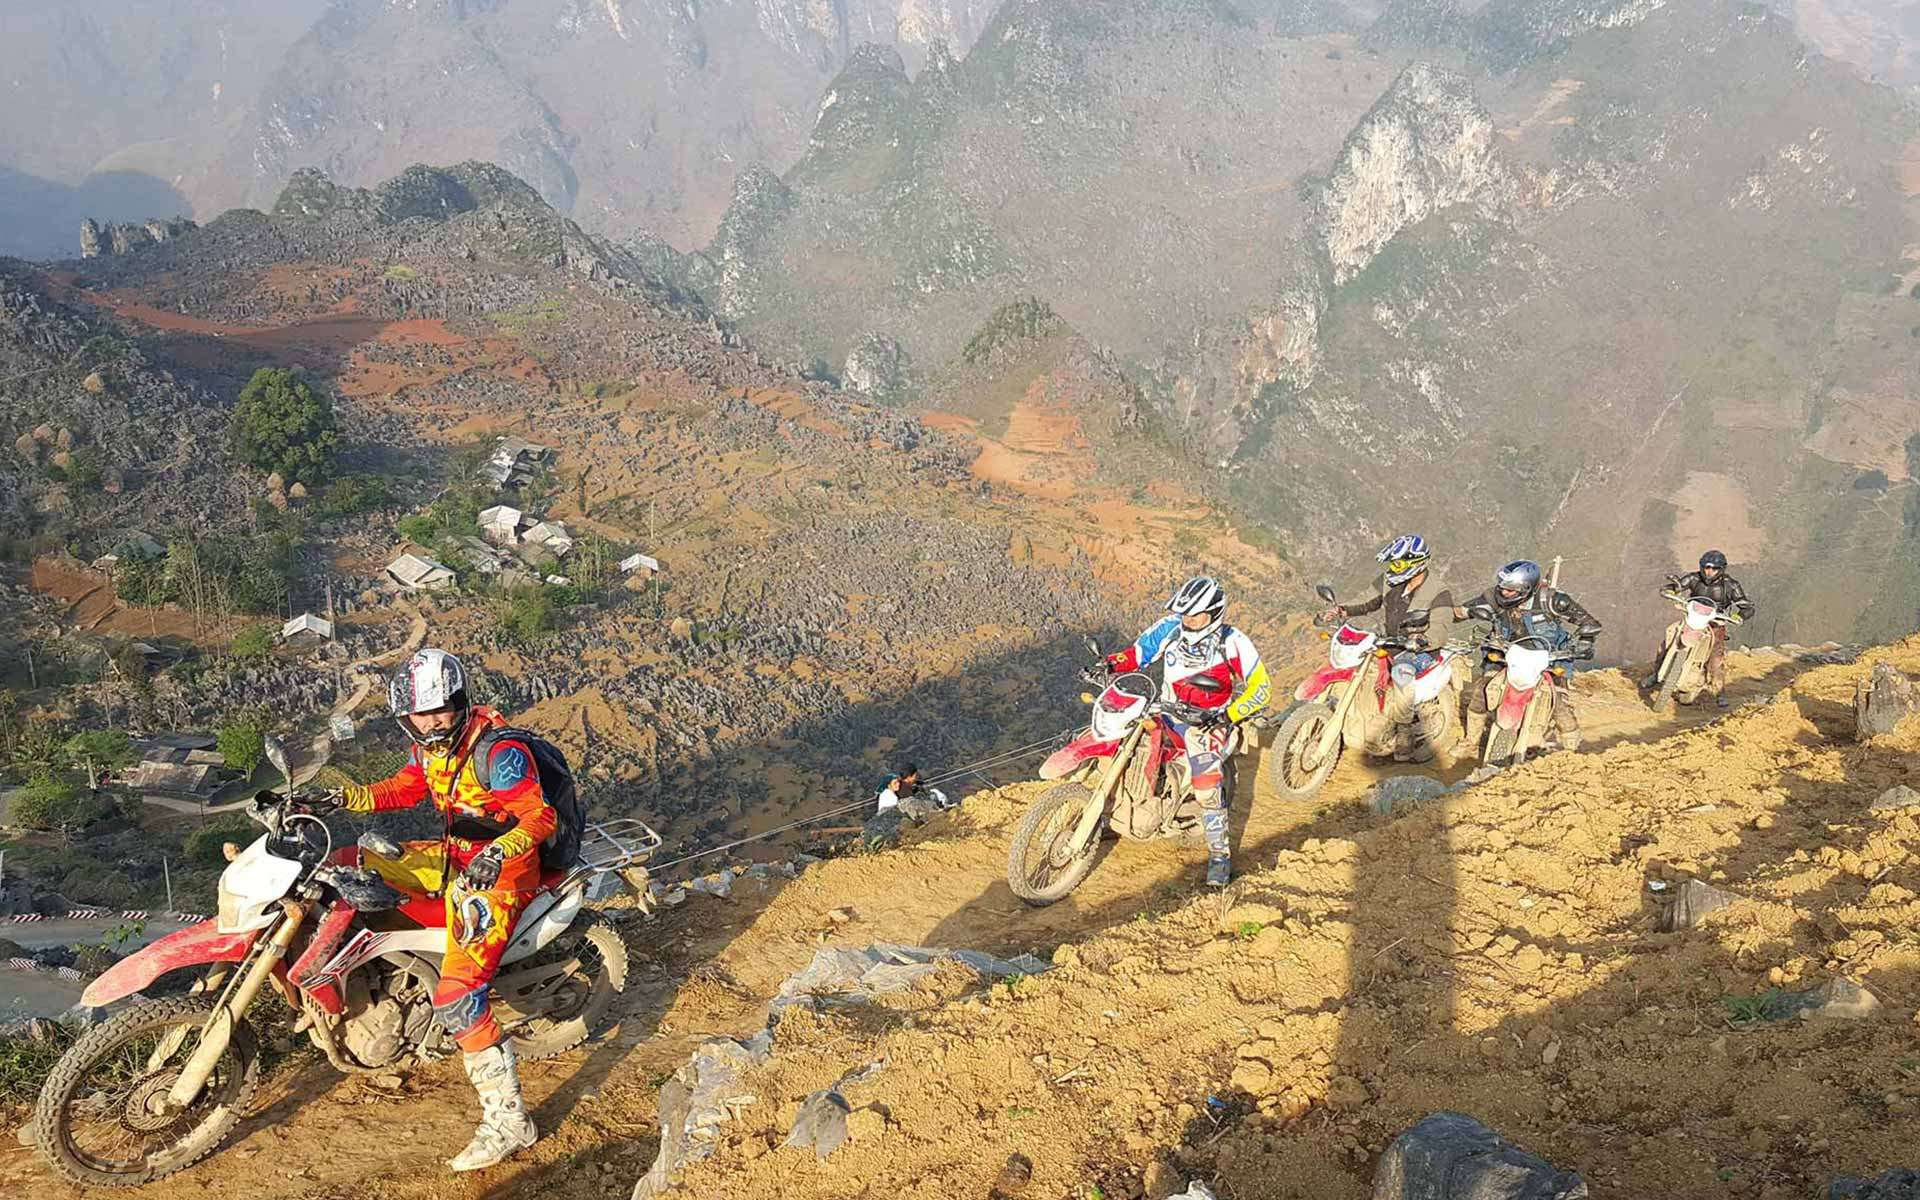 Motor bike in Ha Giang